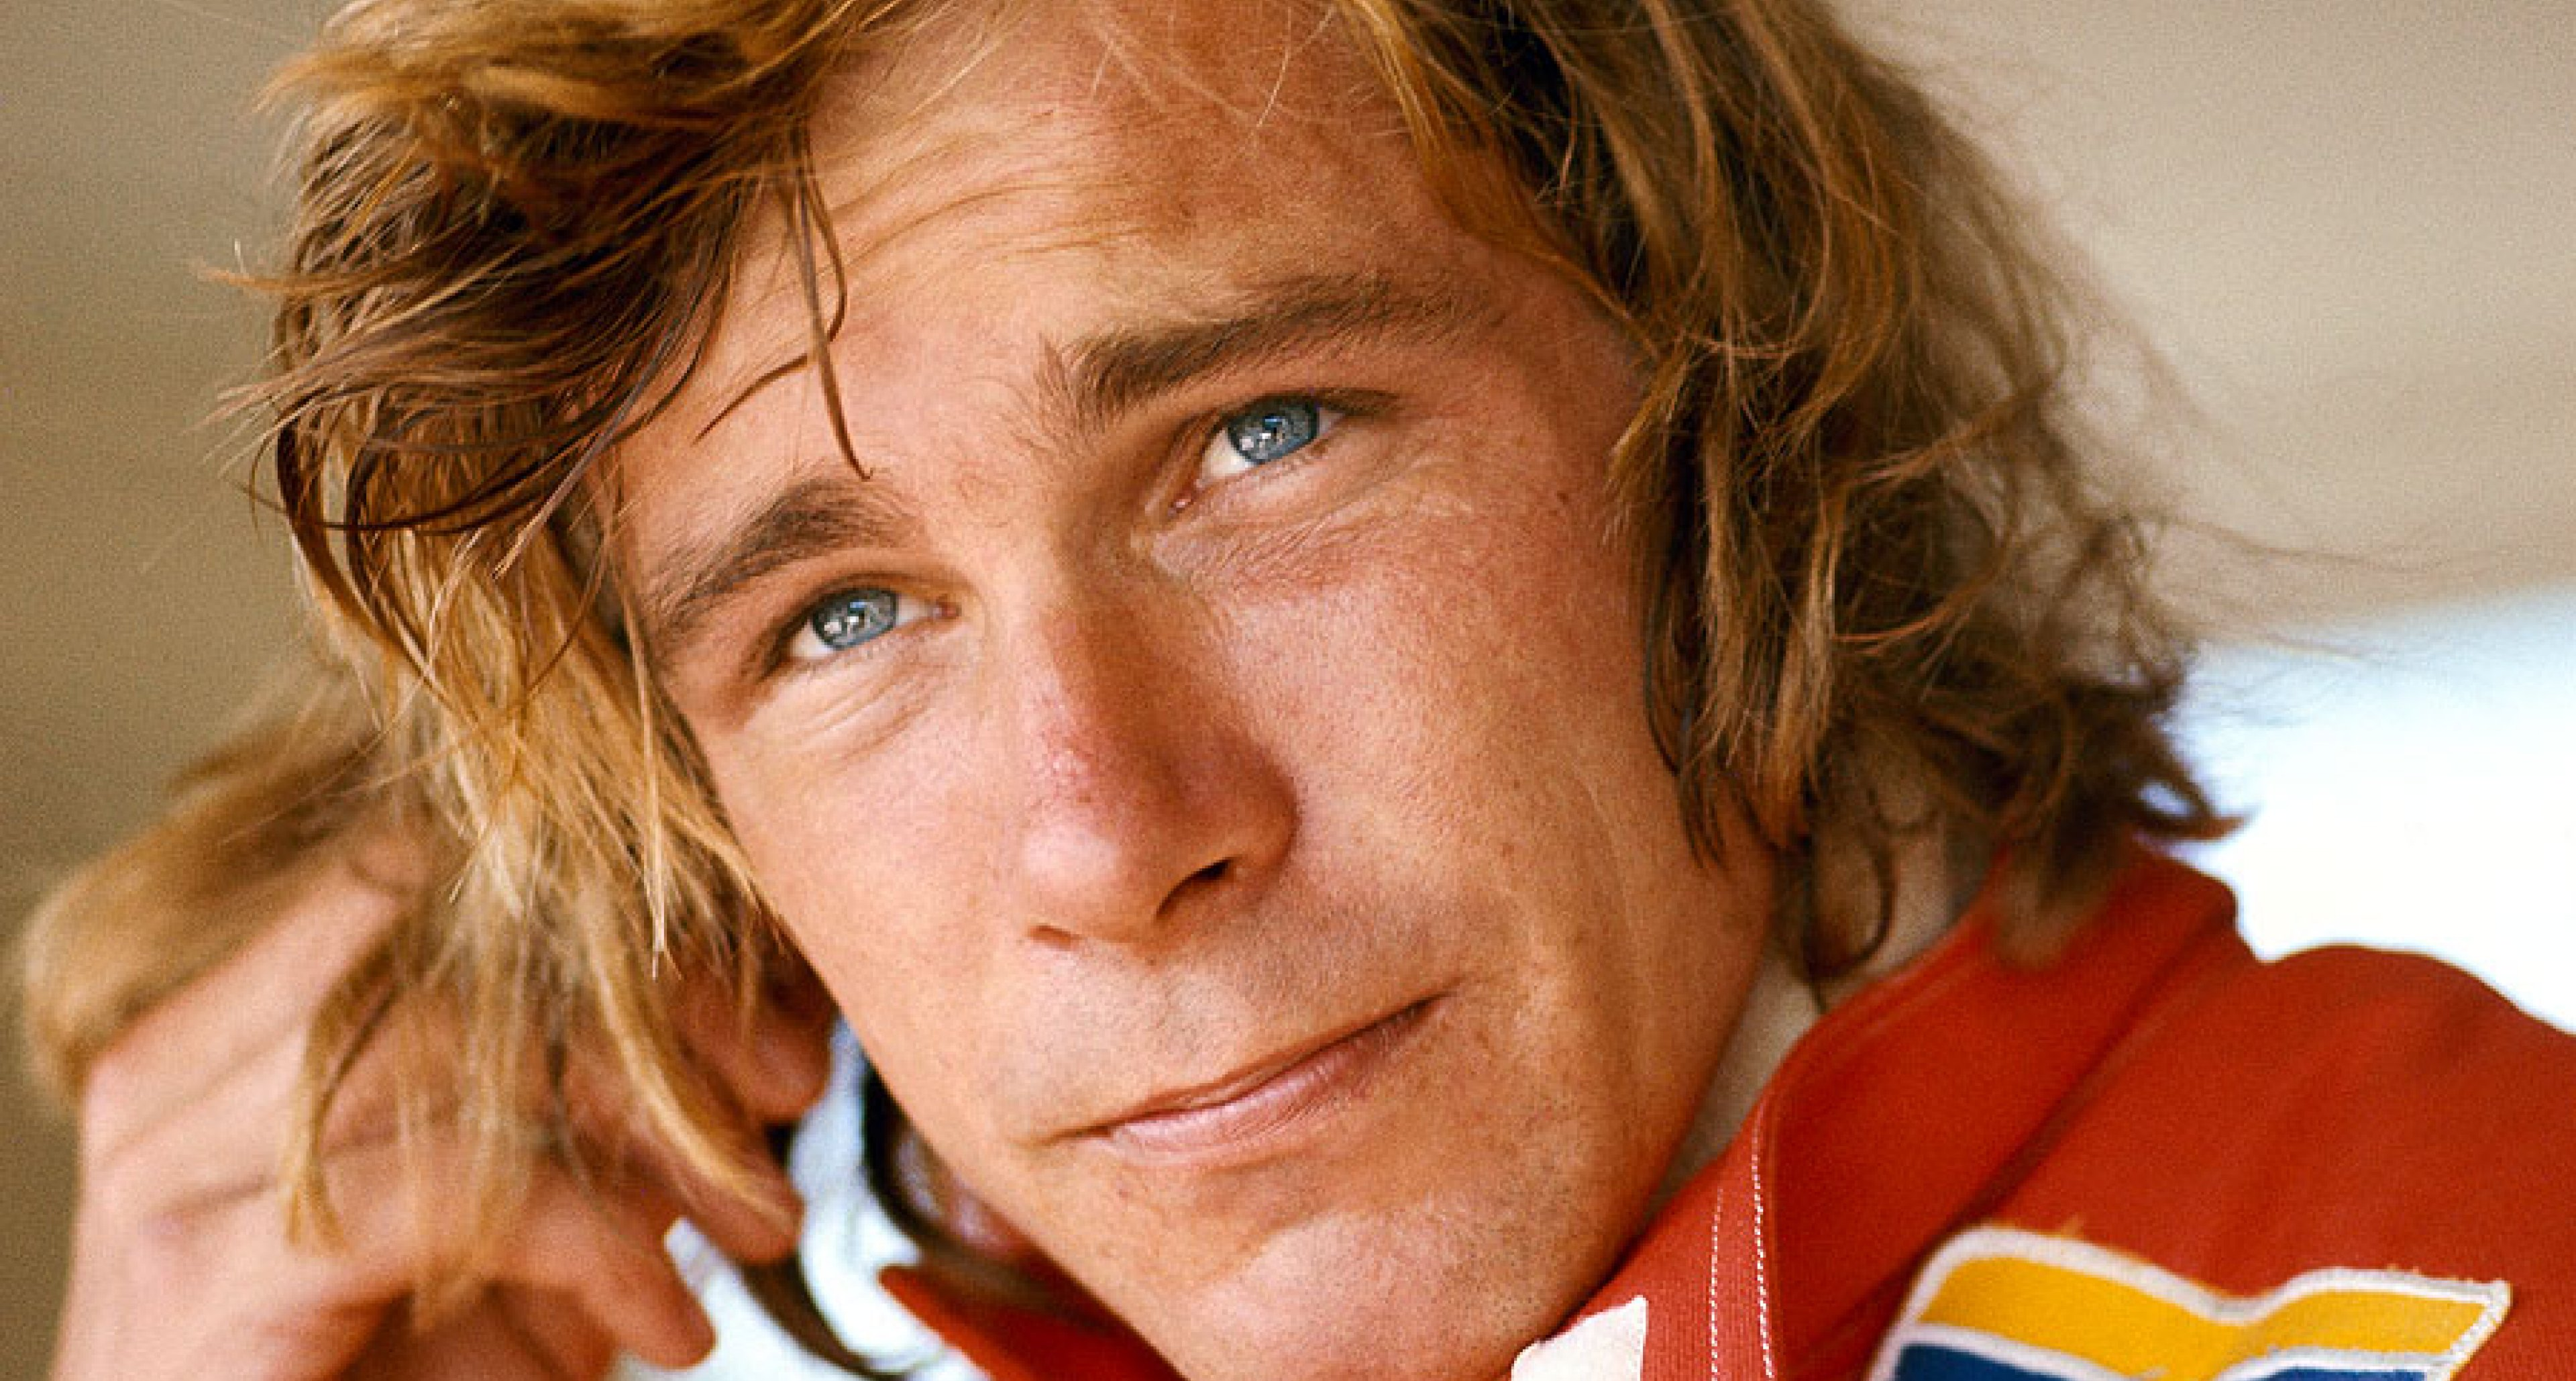 Formula 1: 'The Hairy Years', vote for your favourite driver